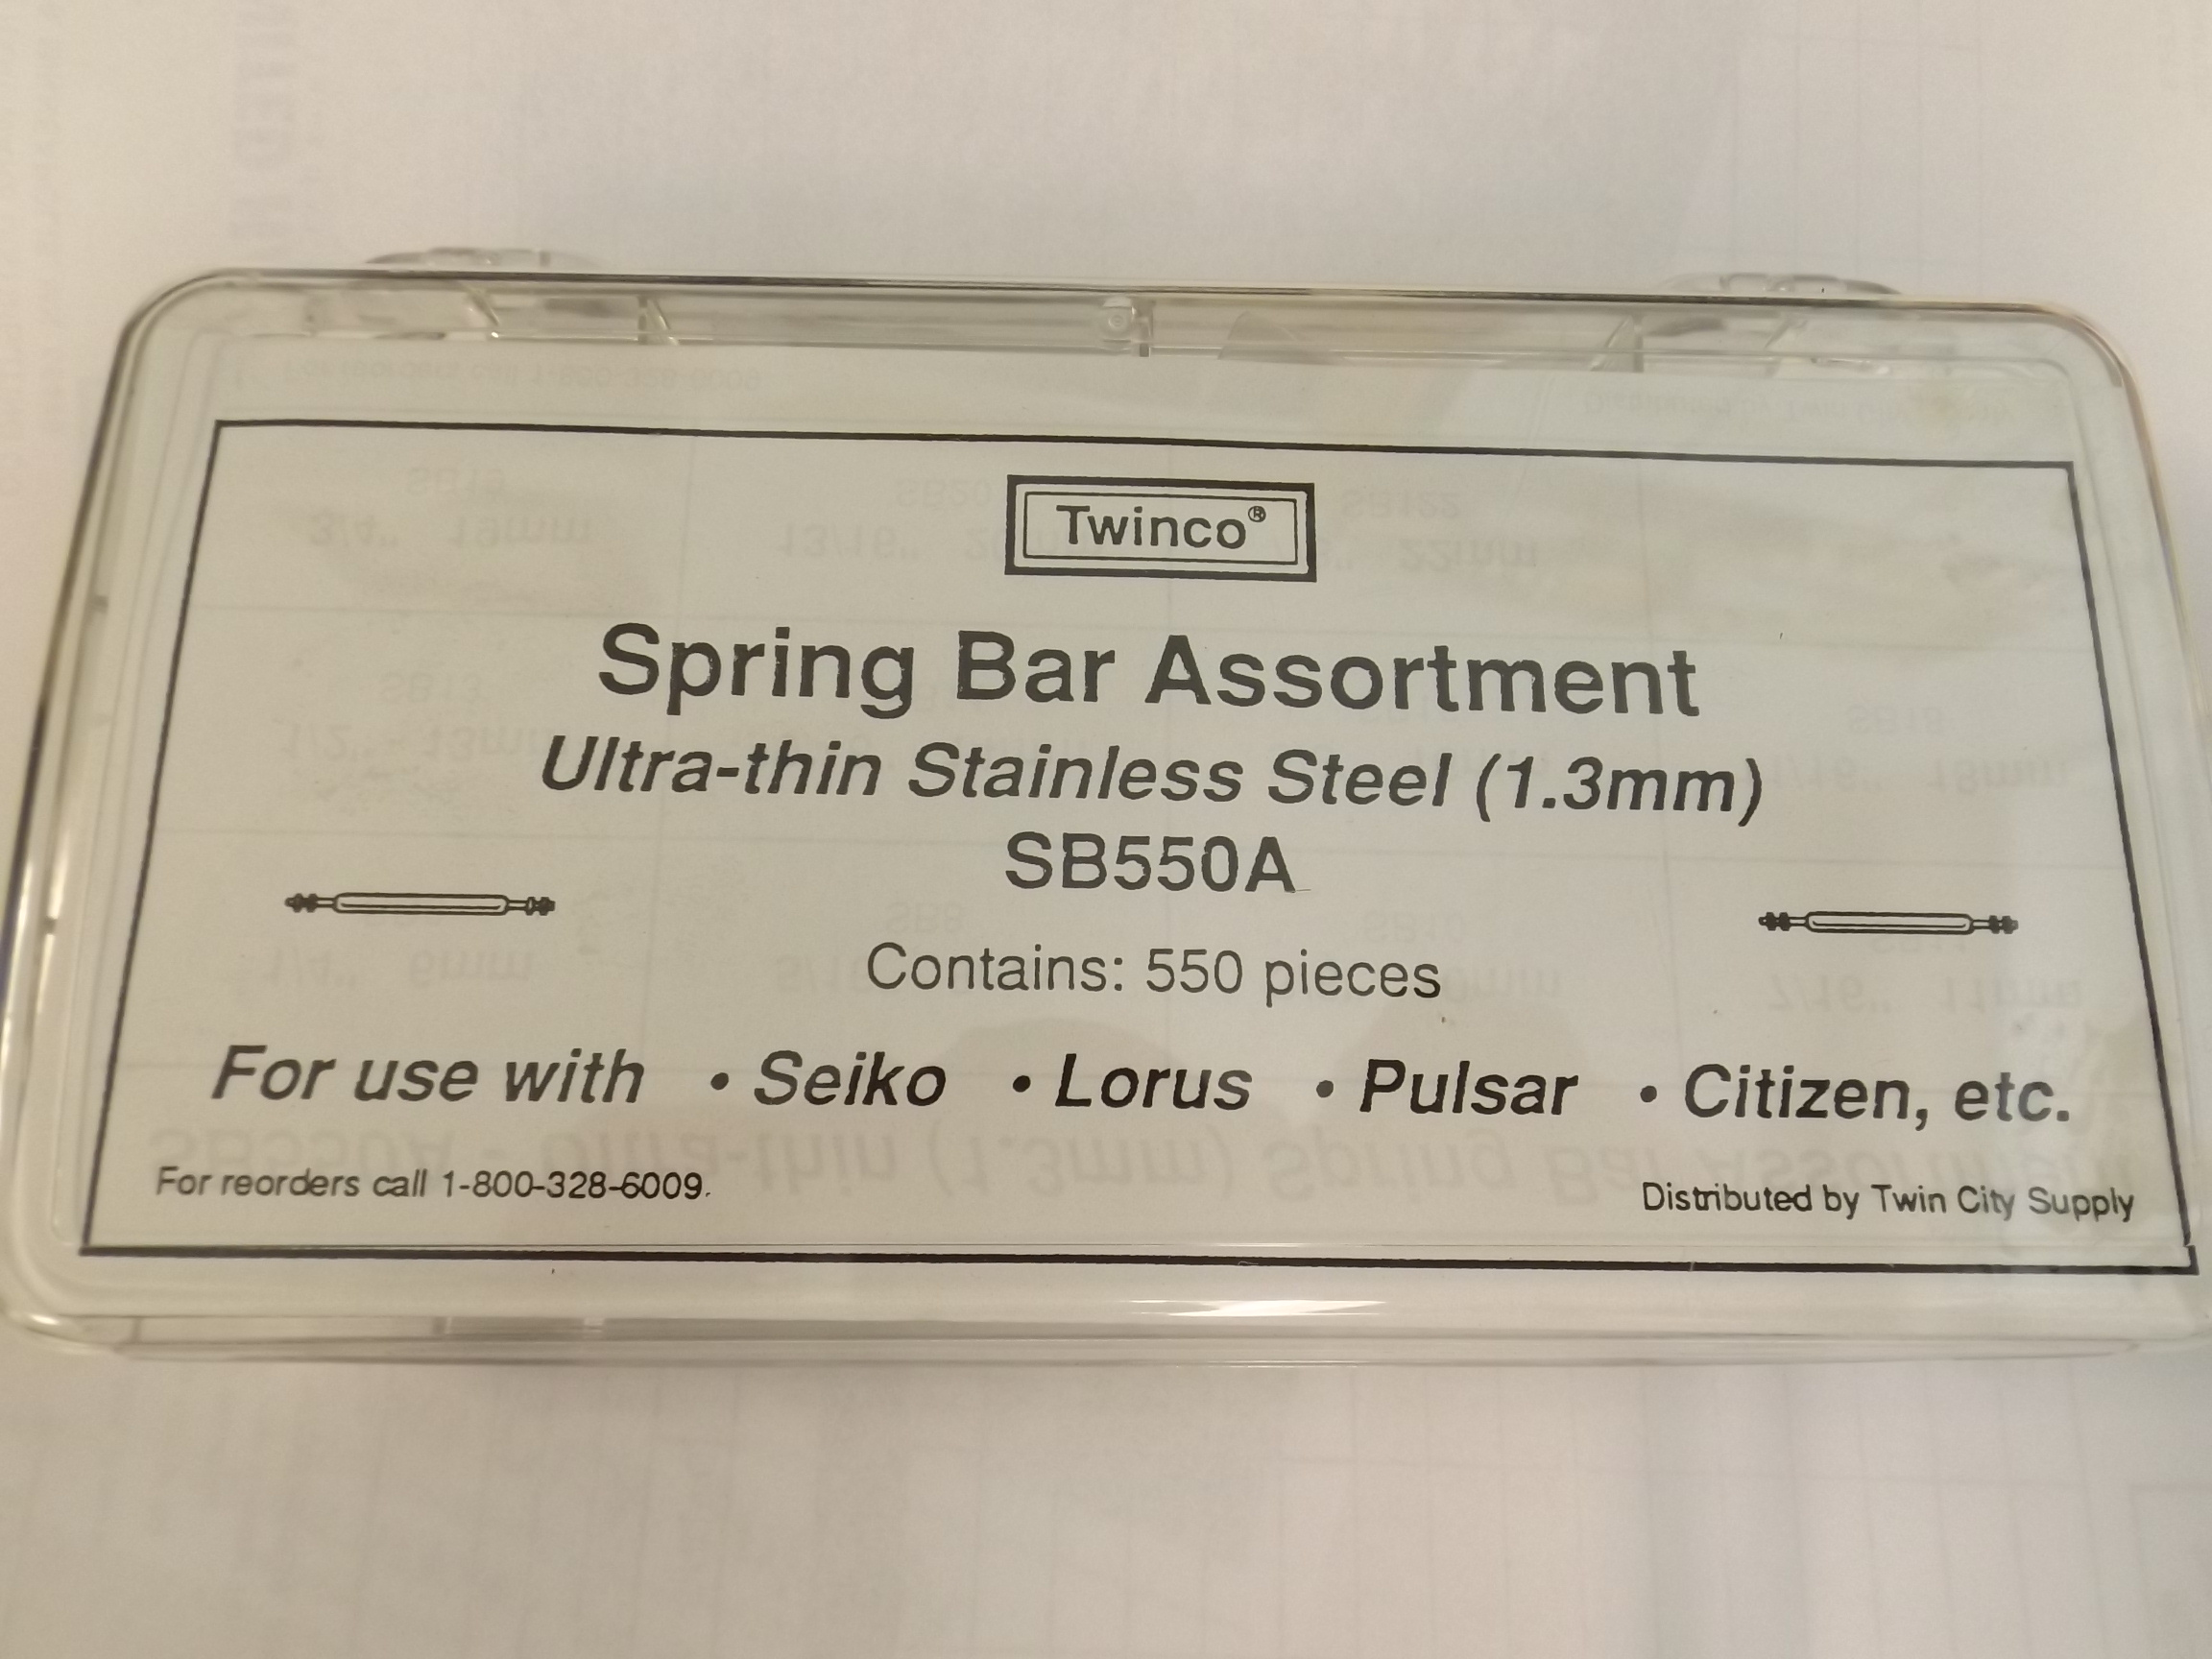 XSB550A Twinco Popular Ultra Thin 1.3mm thick 550 piece Spring Bar Assortment